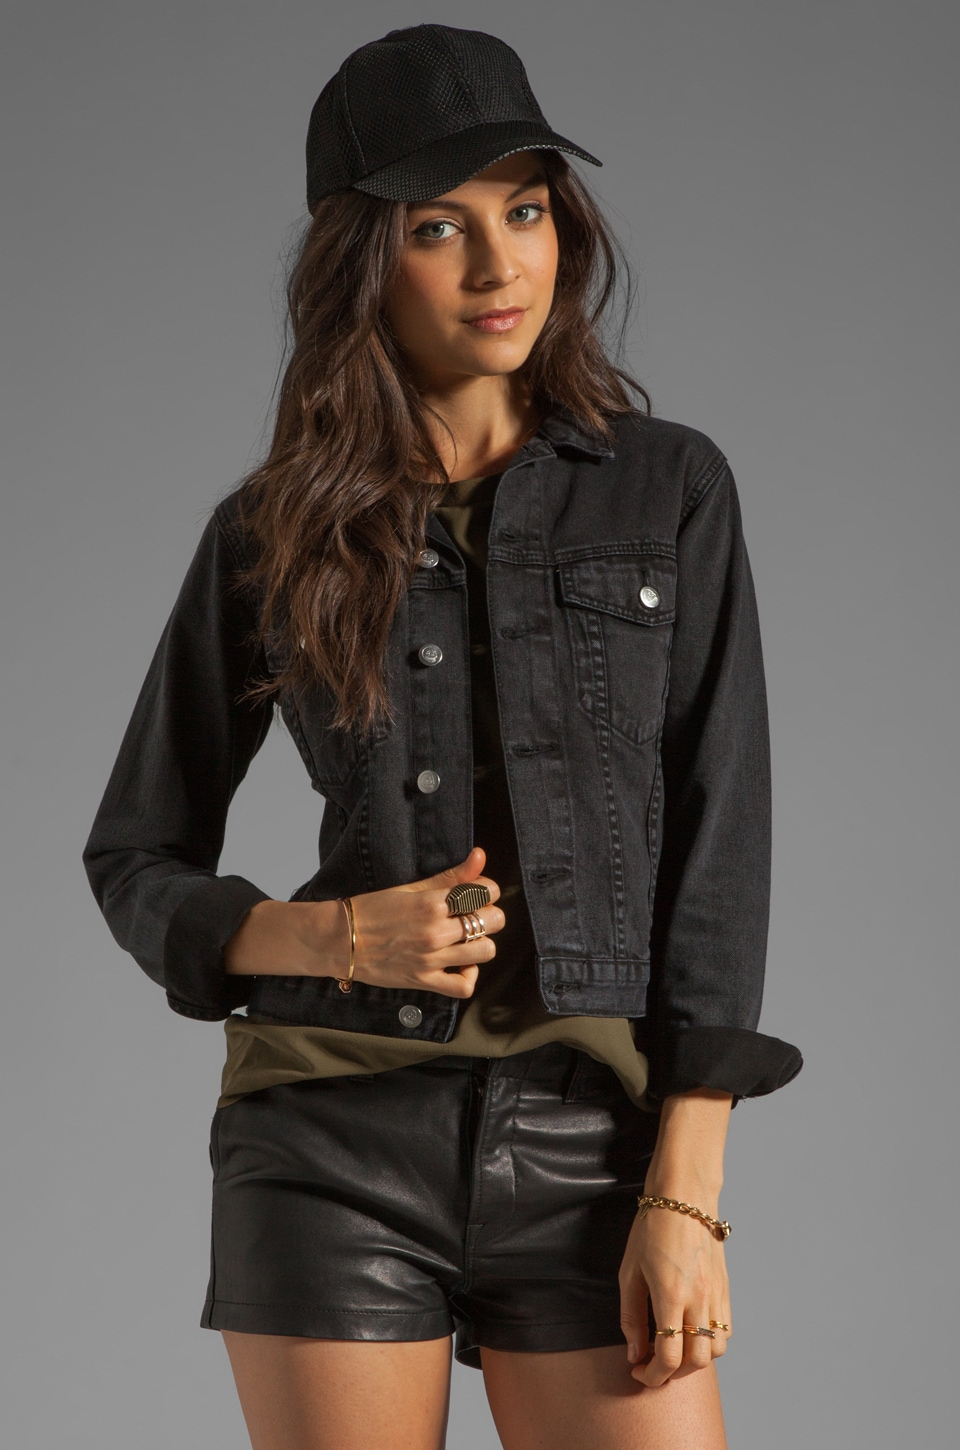 Cheap Monday Tess Jeans Jacket in Washed Black